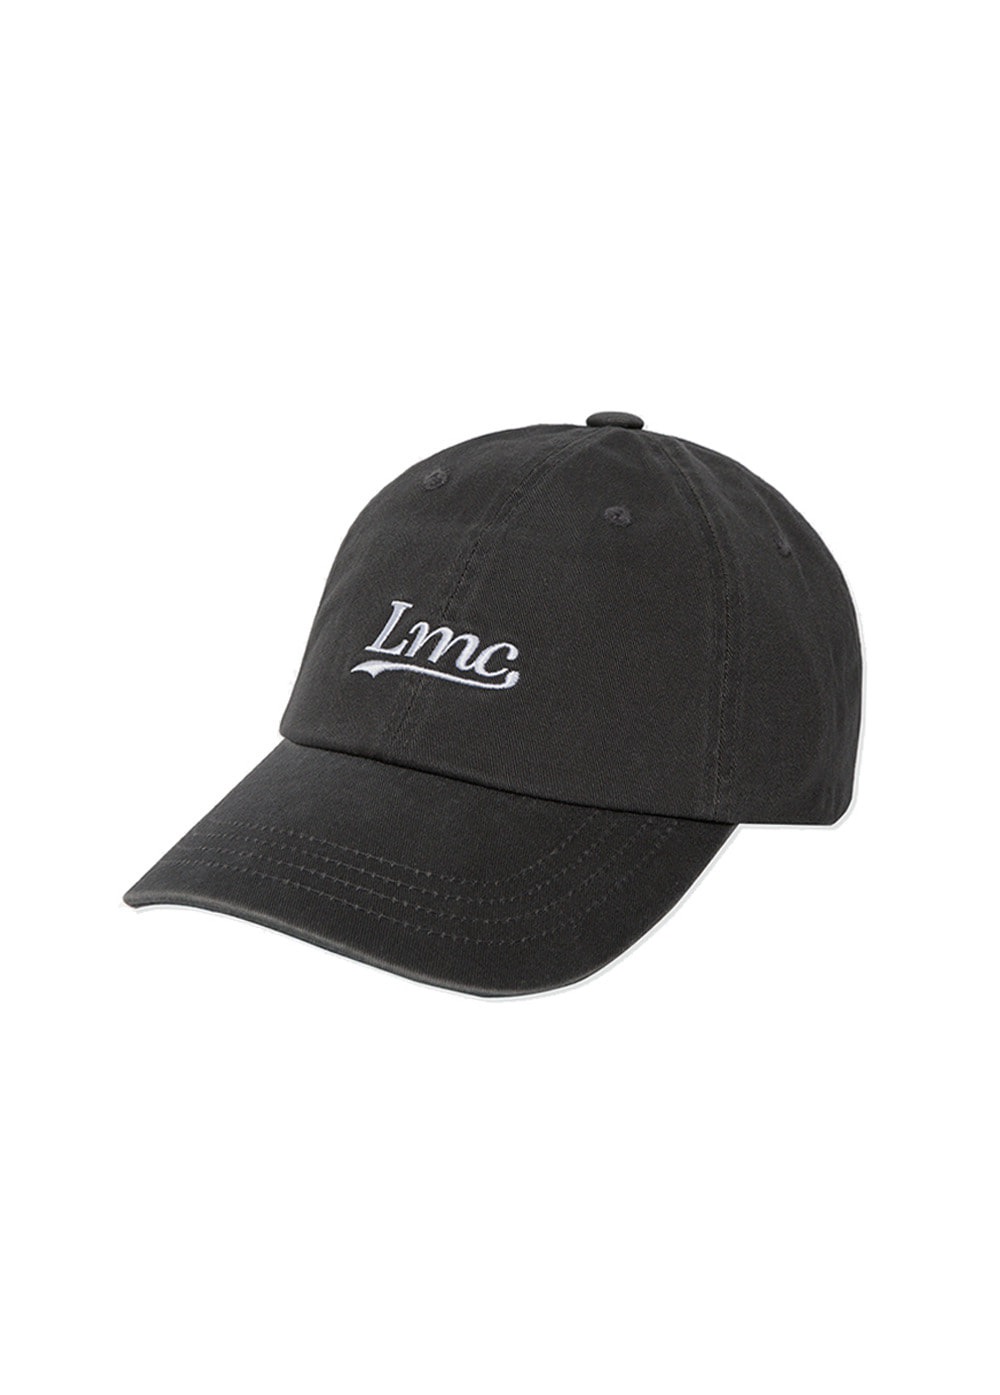 LMC CLASSIC WASHED 6 PANEL CAP charcoal